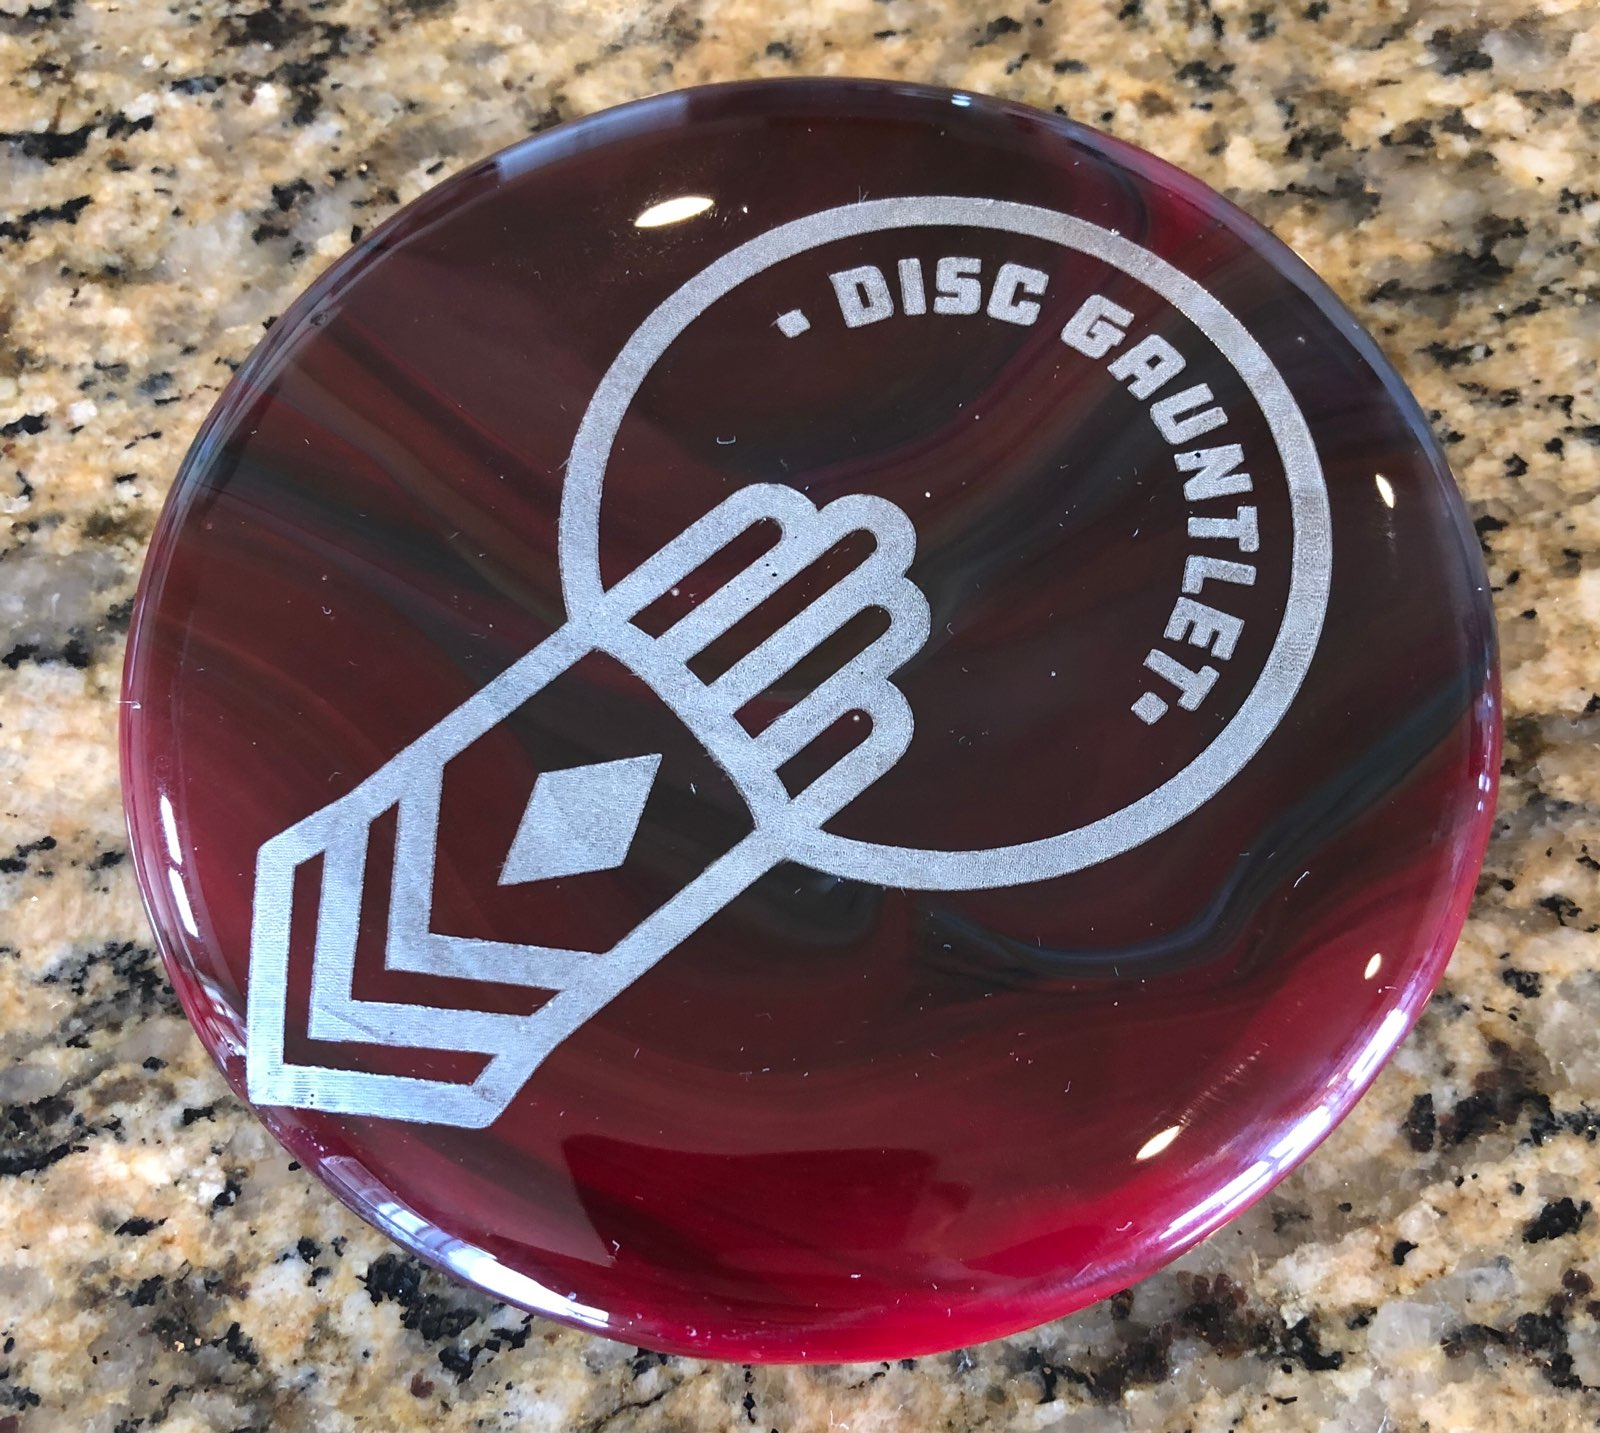 Disc Gauntlet - Based out of Lincoln, NE